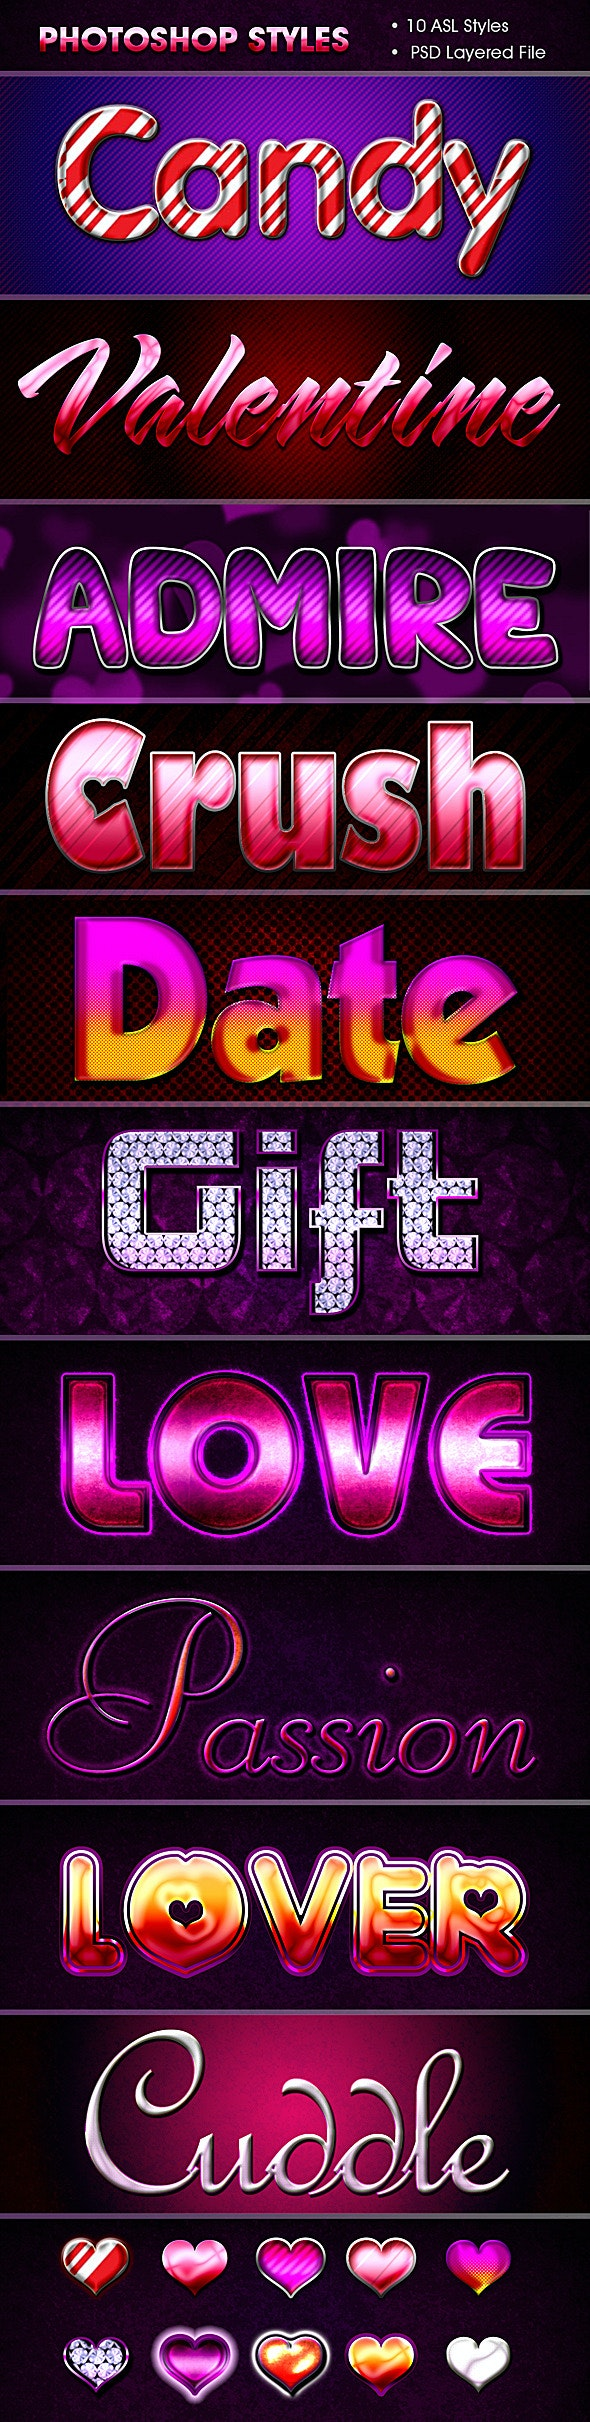 Valentine Styles - Text Effects Styles